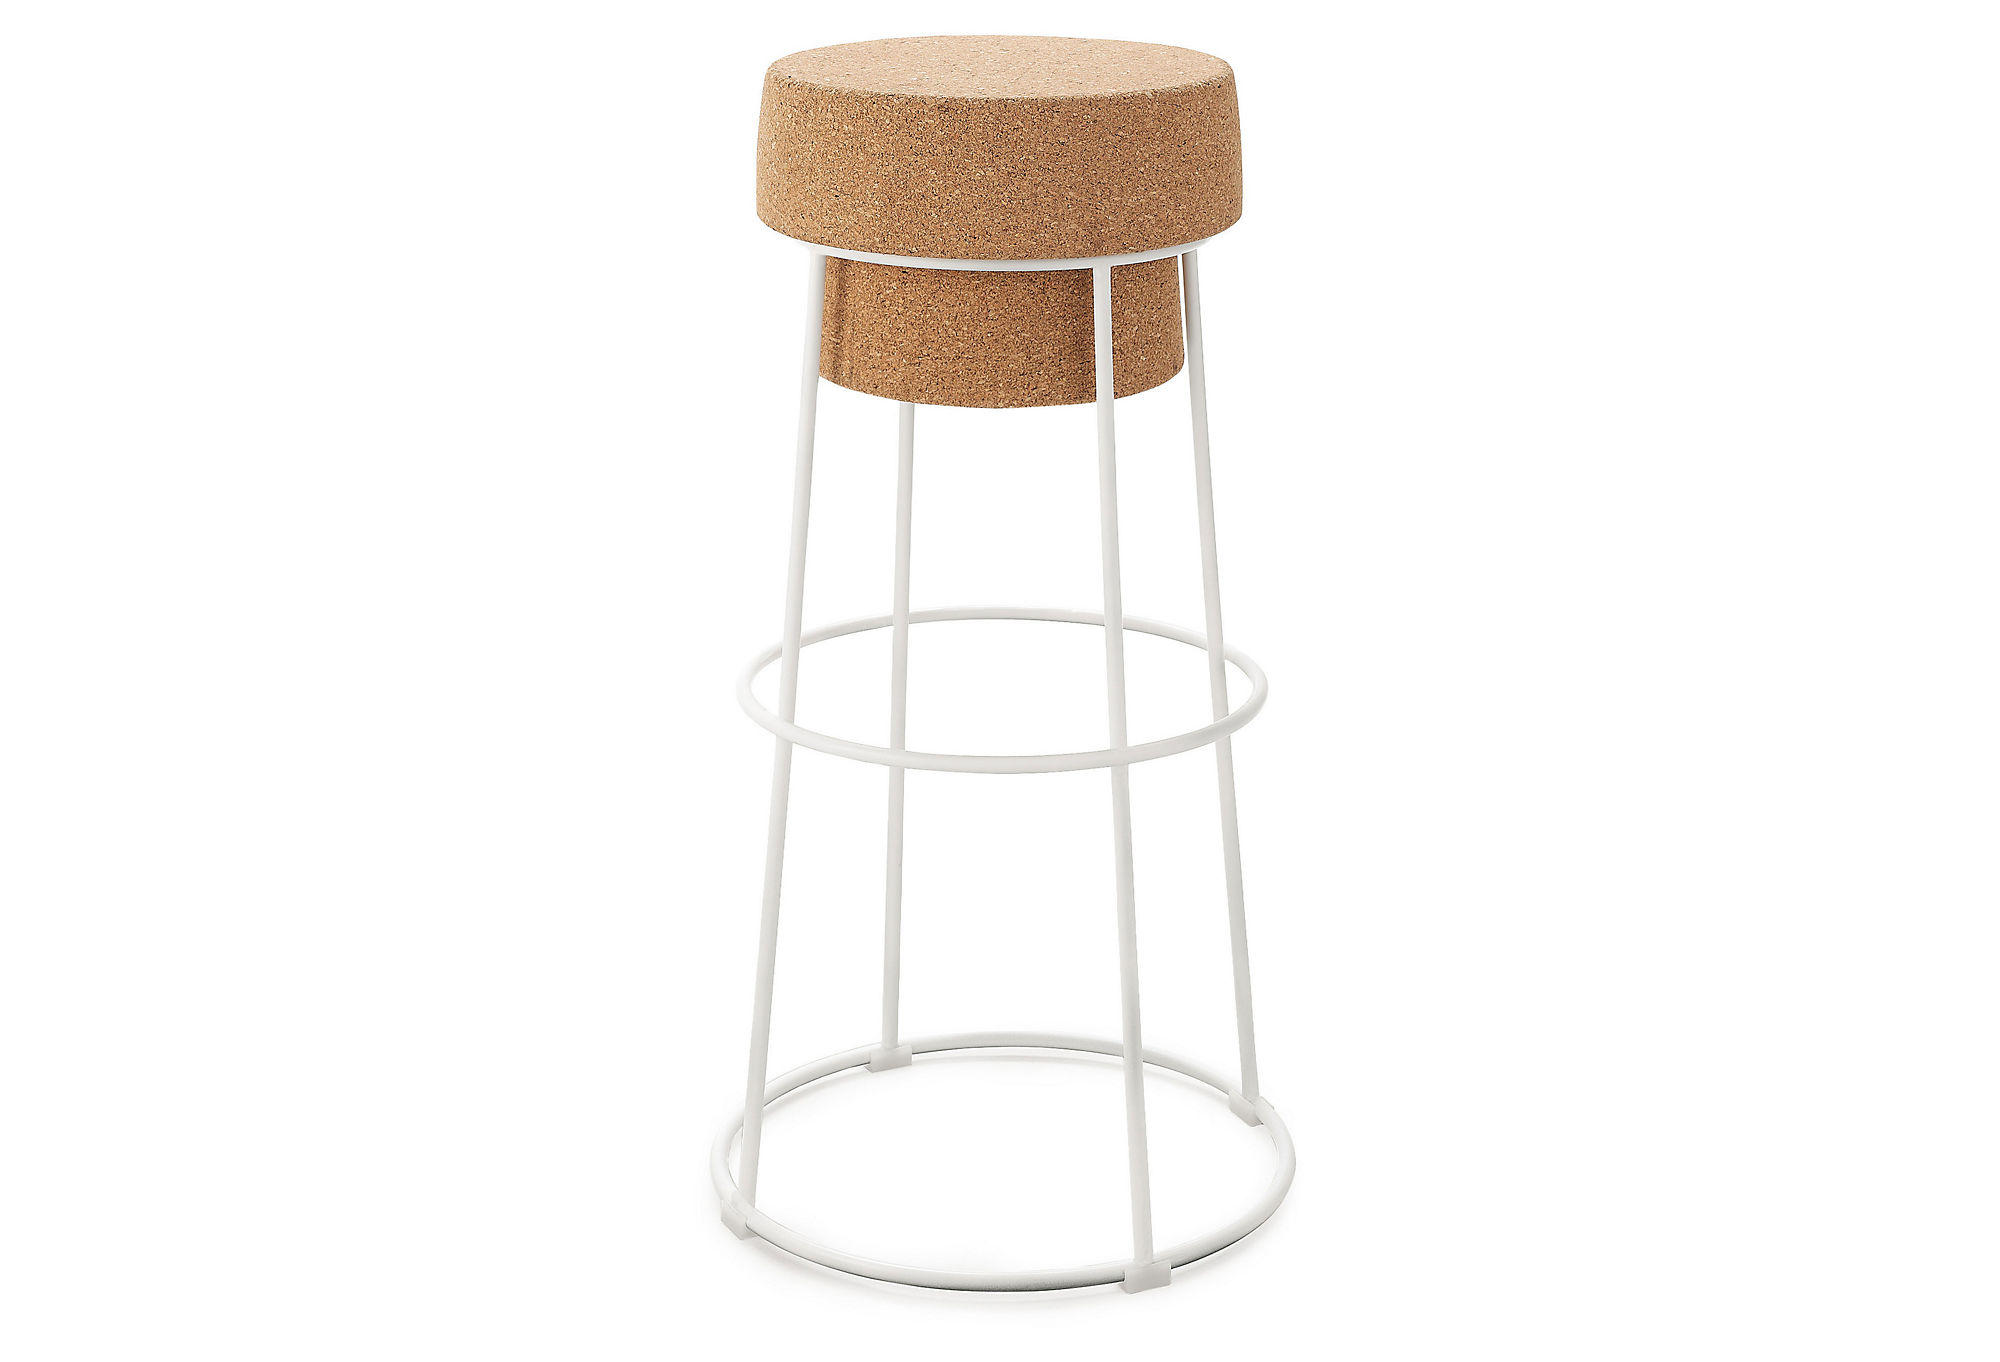 Bouchon Counter Stool Bouchon Stool White Bar And Counter From One Kings Lane